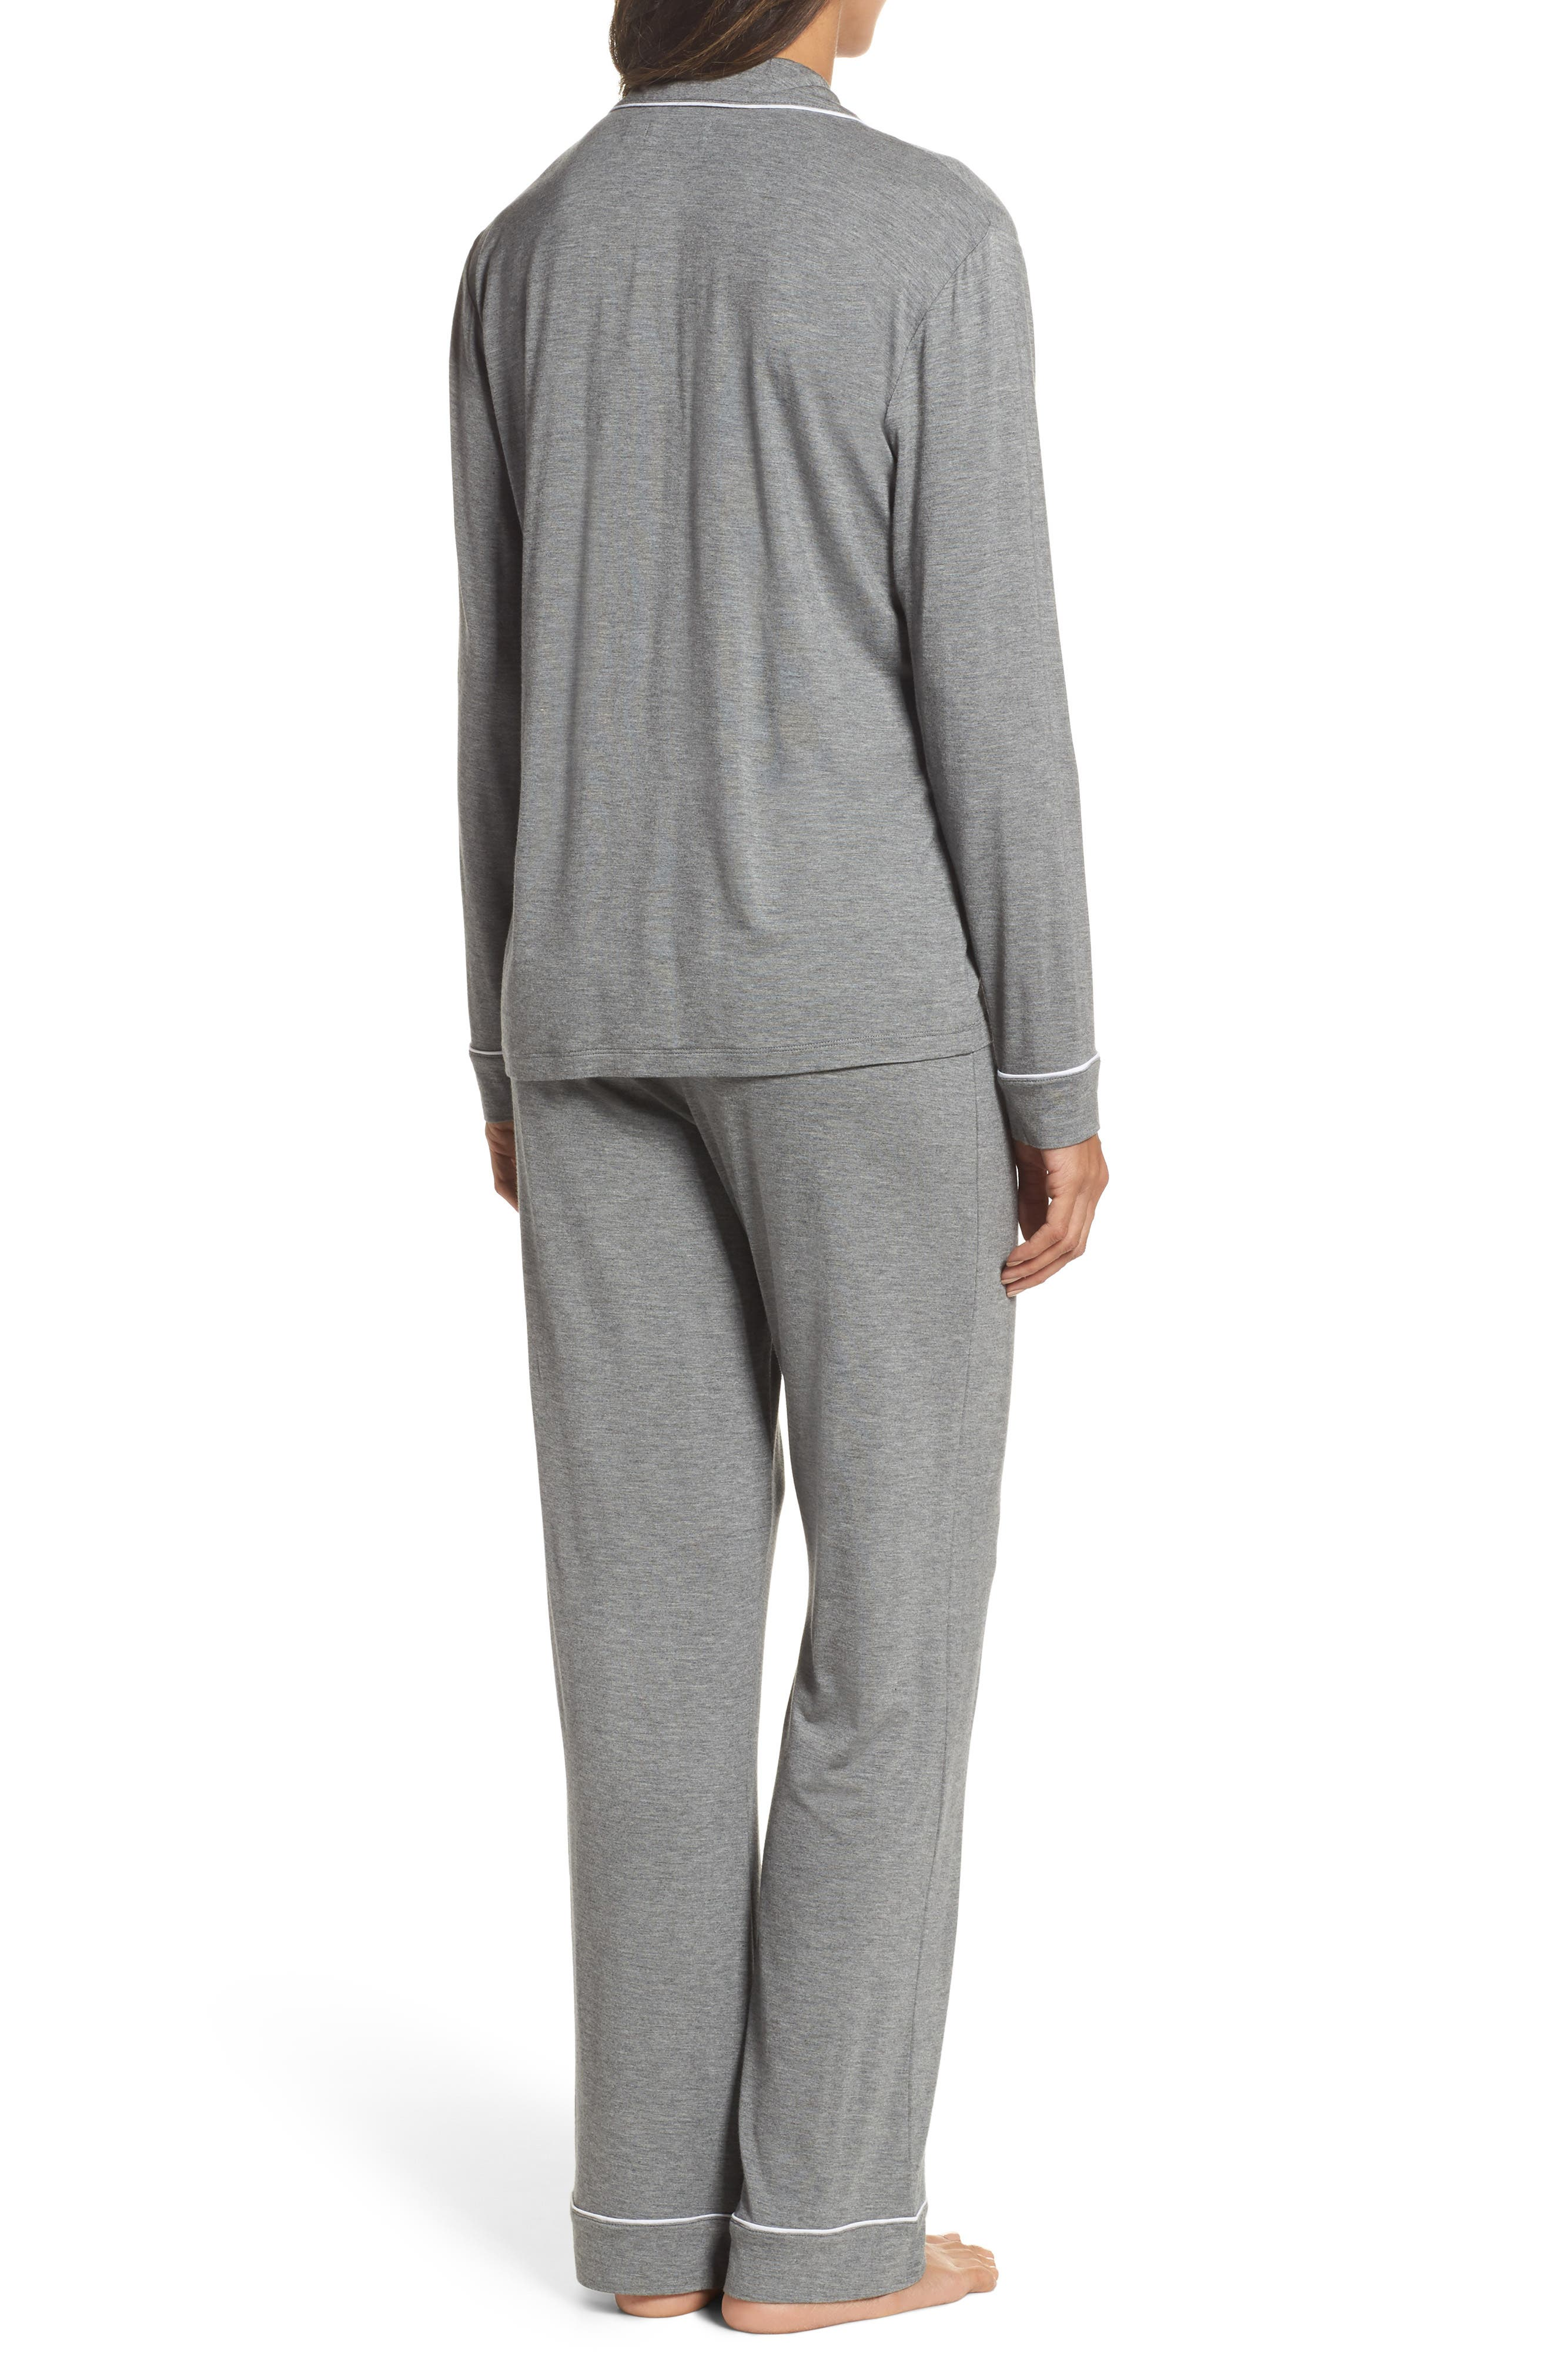 Lenon Jersey Pajamas,                             Alternate thumbnail 2, color,                             GREY HEATHER